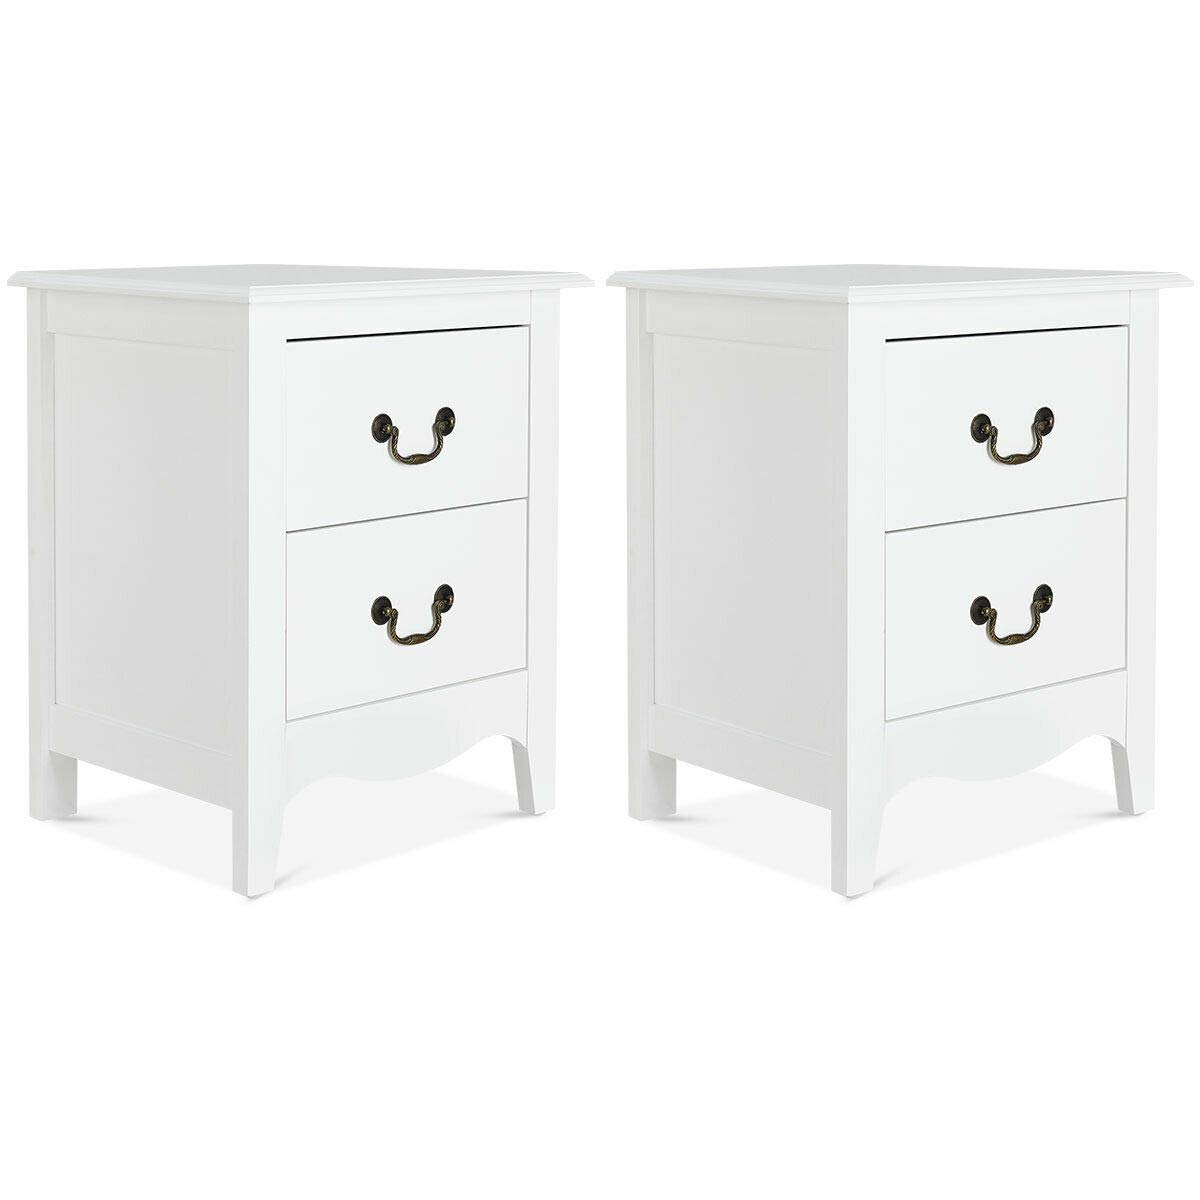 Giantex Nightstand Bedside Table Cabinet Bedroom Furniture Storage Bedside Sofa Table W/ 2 Drawers for Living Room, Bedroom End Side Table (2) by Giantex